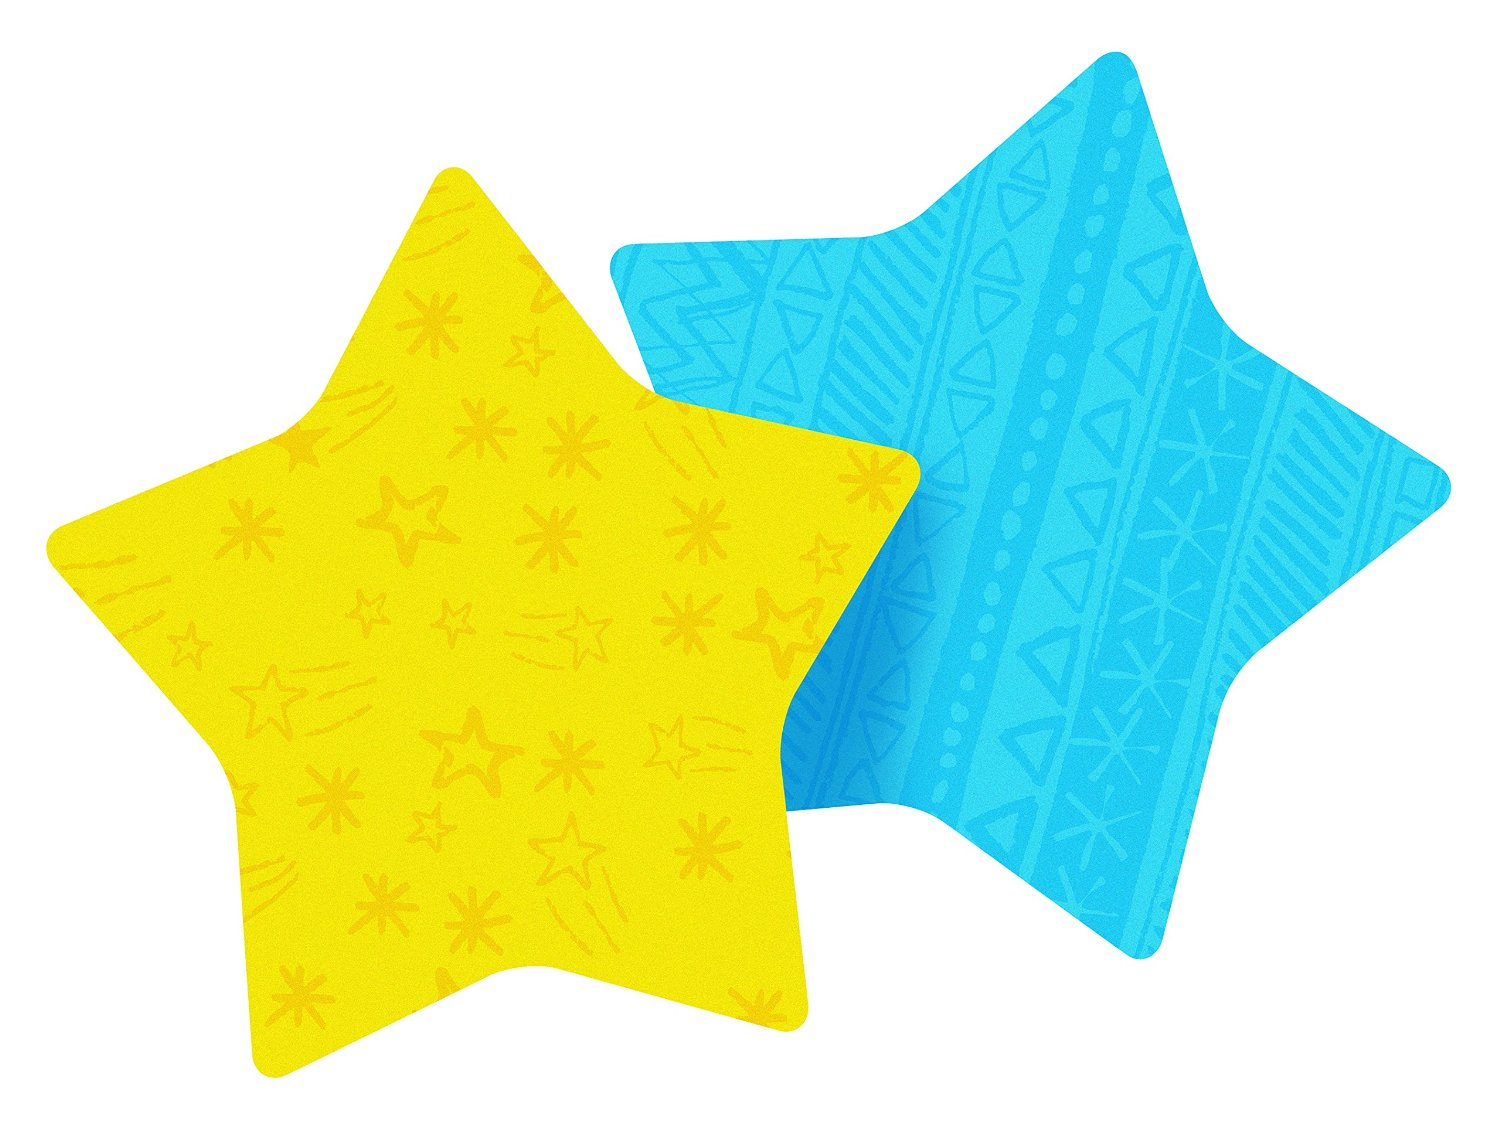 Post-it Notes, Super Sticky Pad, 2.9 x 2.8 Inch, Star Shape, Yellow and Pink with pattern, 2 Pads/Pack, 75 Sheets/Pad (7350-STR)